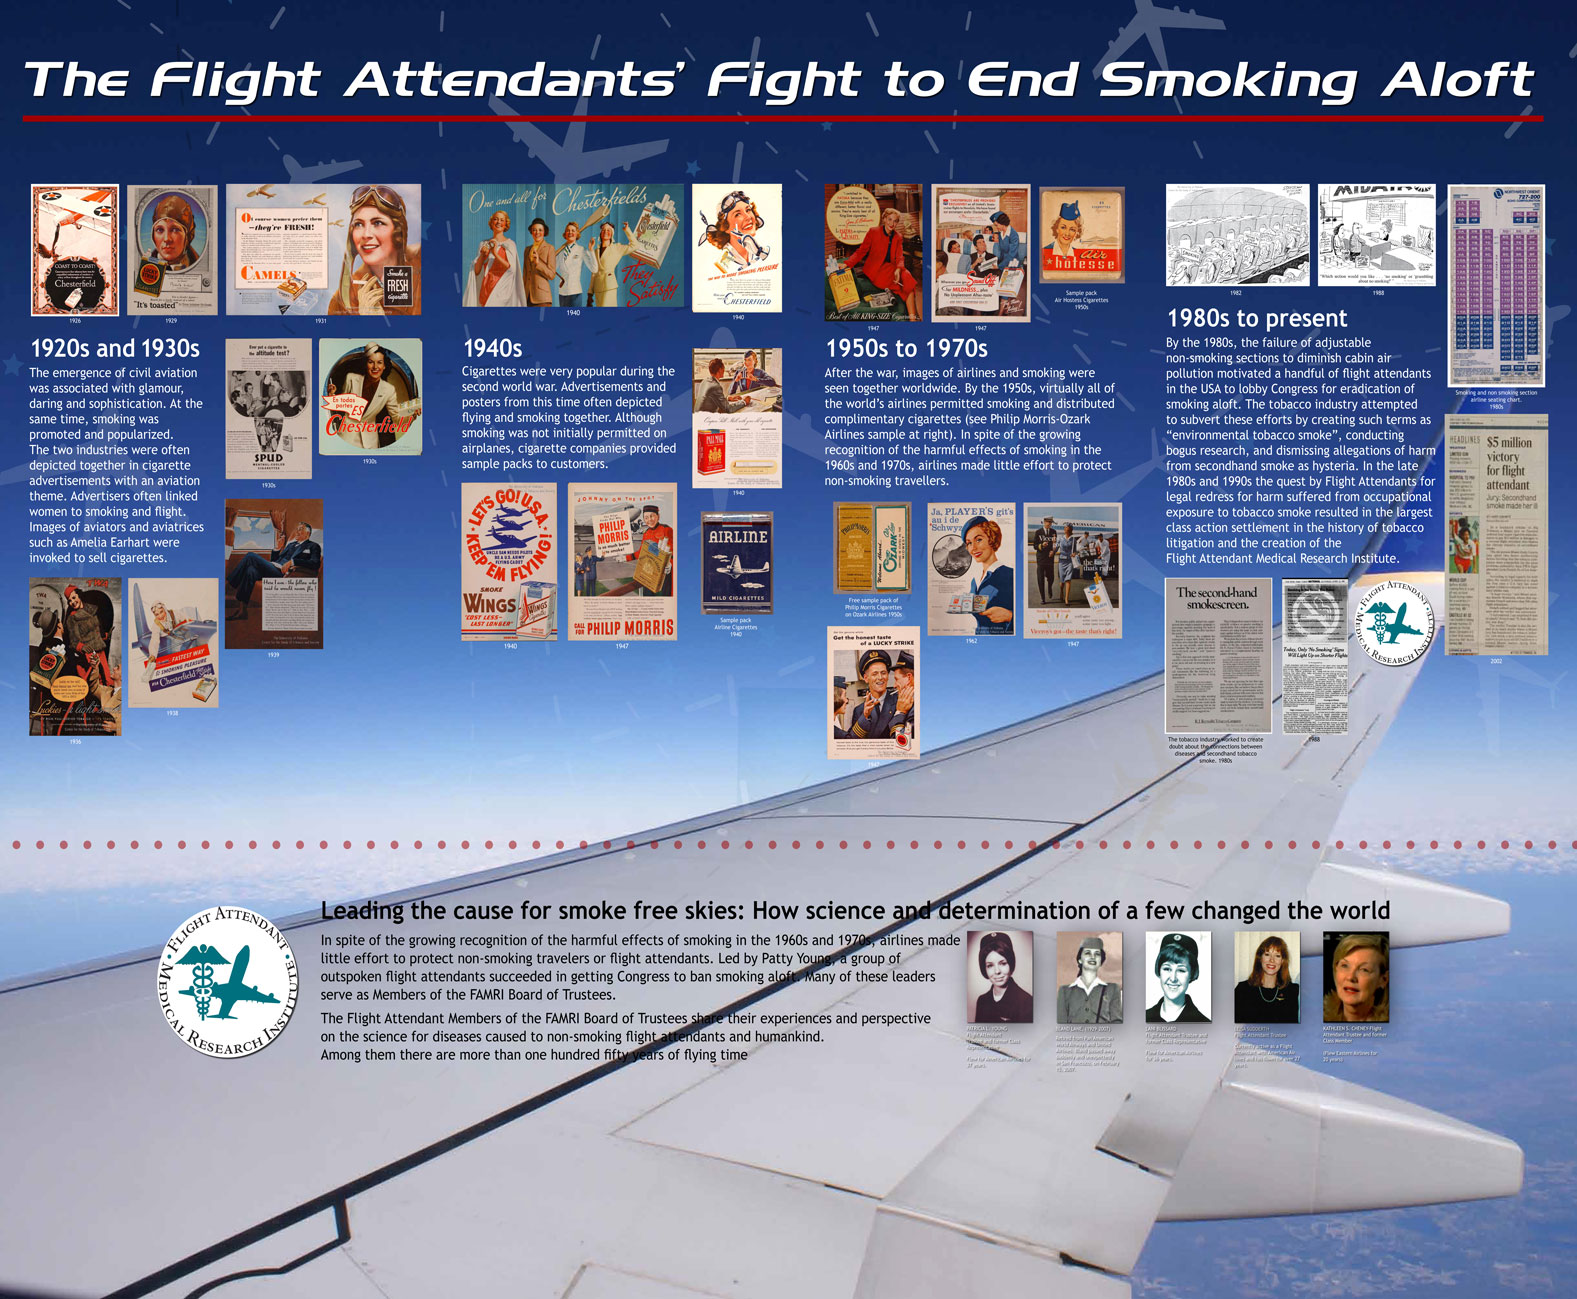 2012 Updated Flight Attendants Fight to End Smoking Poster